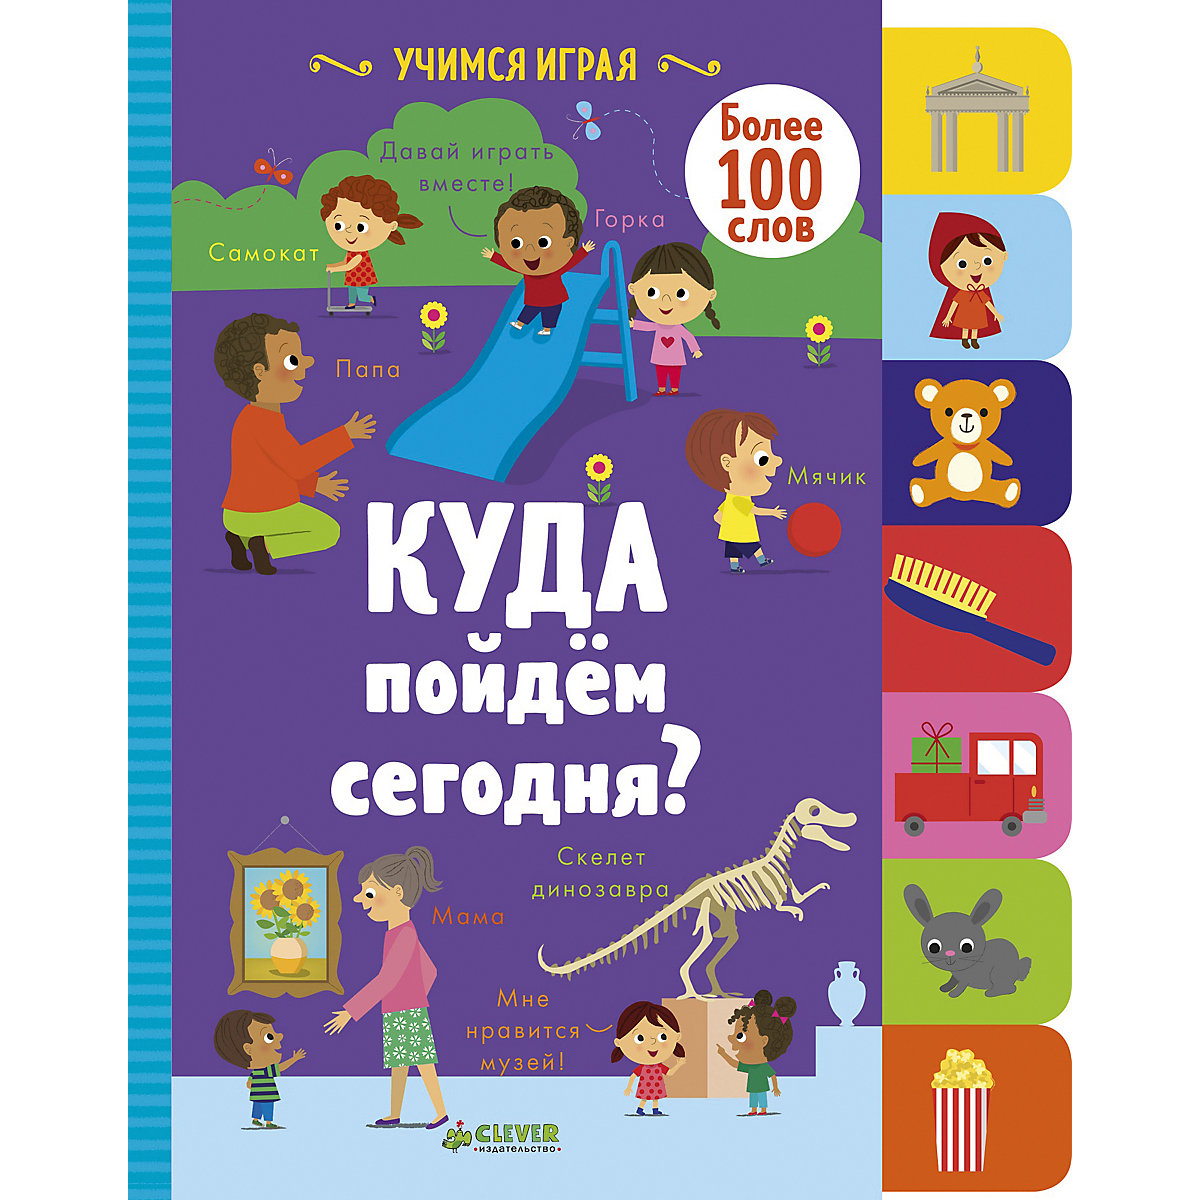 Books CLEVER 8303218 Children Education Encyclopedia Alphabet Dictionary Book For Baby MTpromo